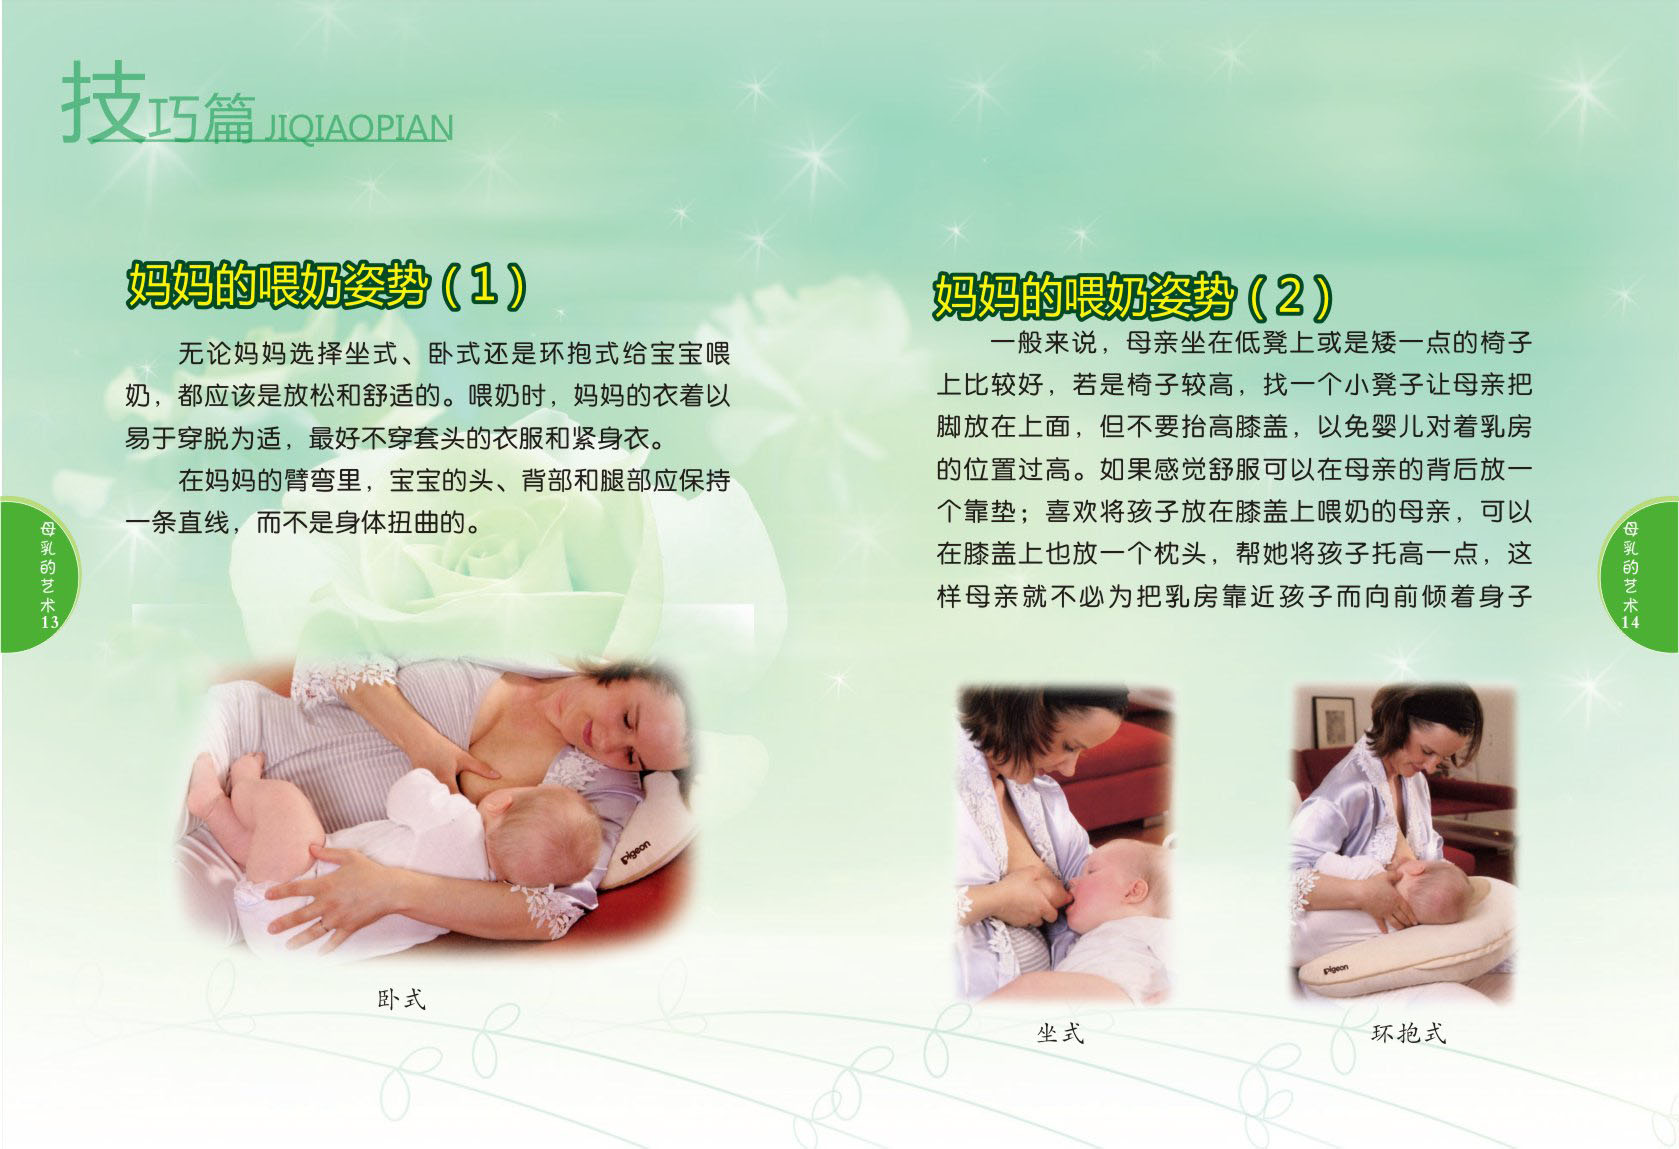 727 posters printed photo printing 857 9 art and benefits of breastfeeding mom breastfeeding posture